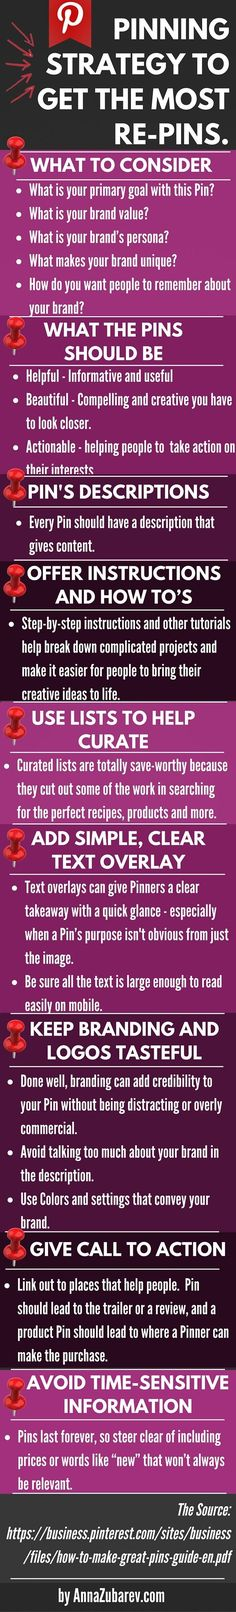 Pinning Strategy Checklist To Get The Most Repins. via @annazubarev #pintereststrategy http://annazubarev.com/pinterest/pinning-strategy-checklist-to-get-the-most-repins/